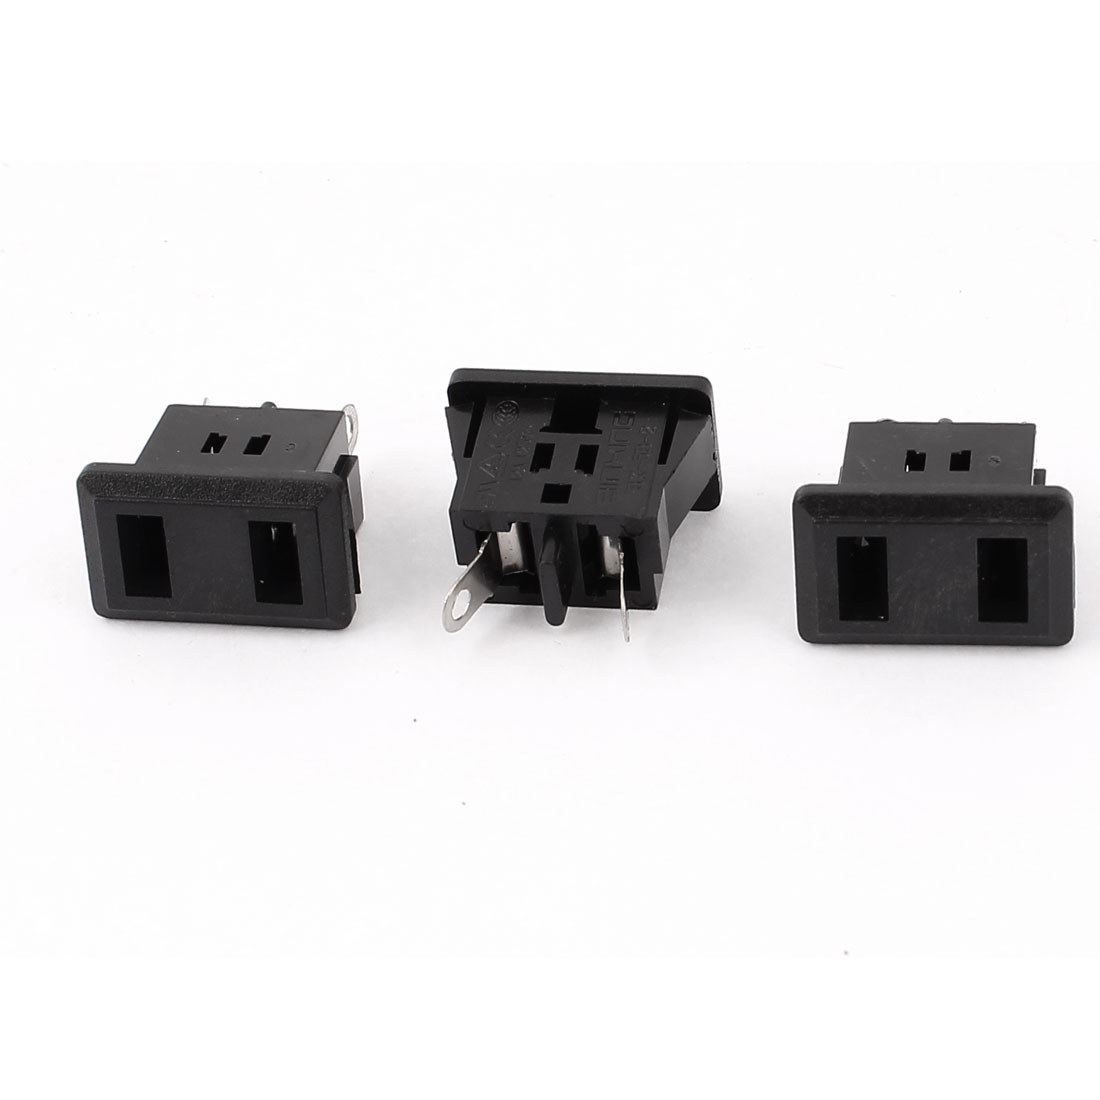 3Pcs PCB Board IEC320 C9 Female Power Socket Adapter AC 125V 12A